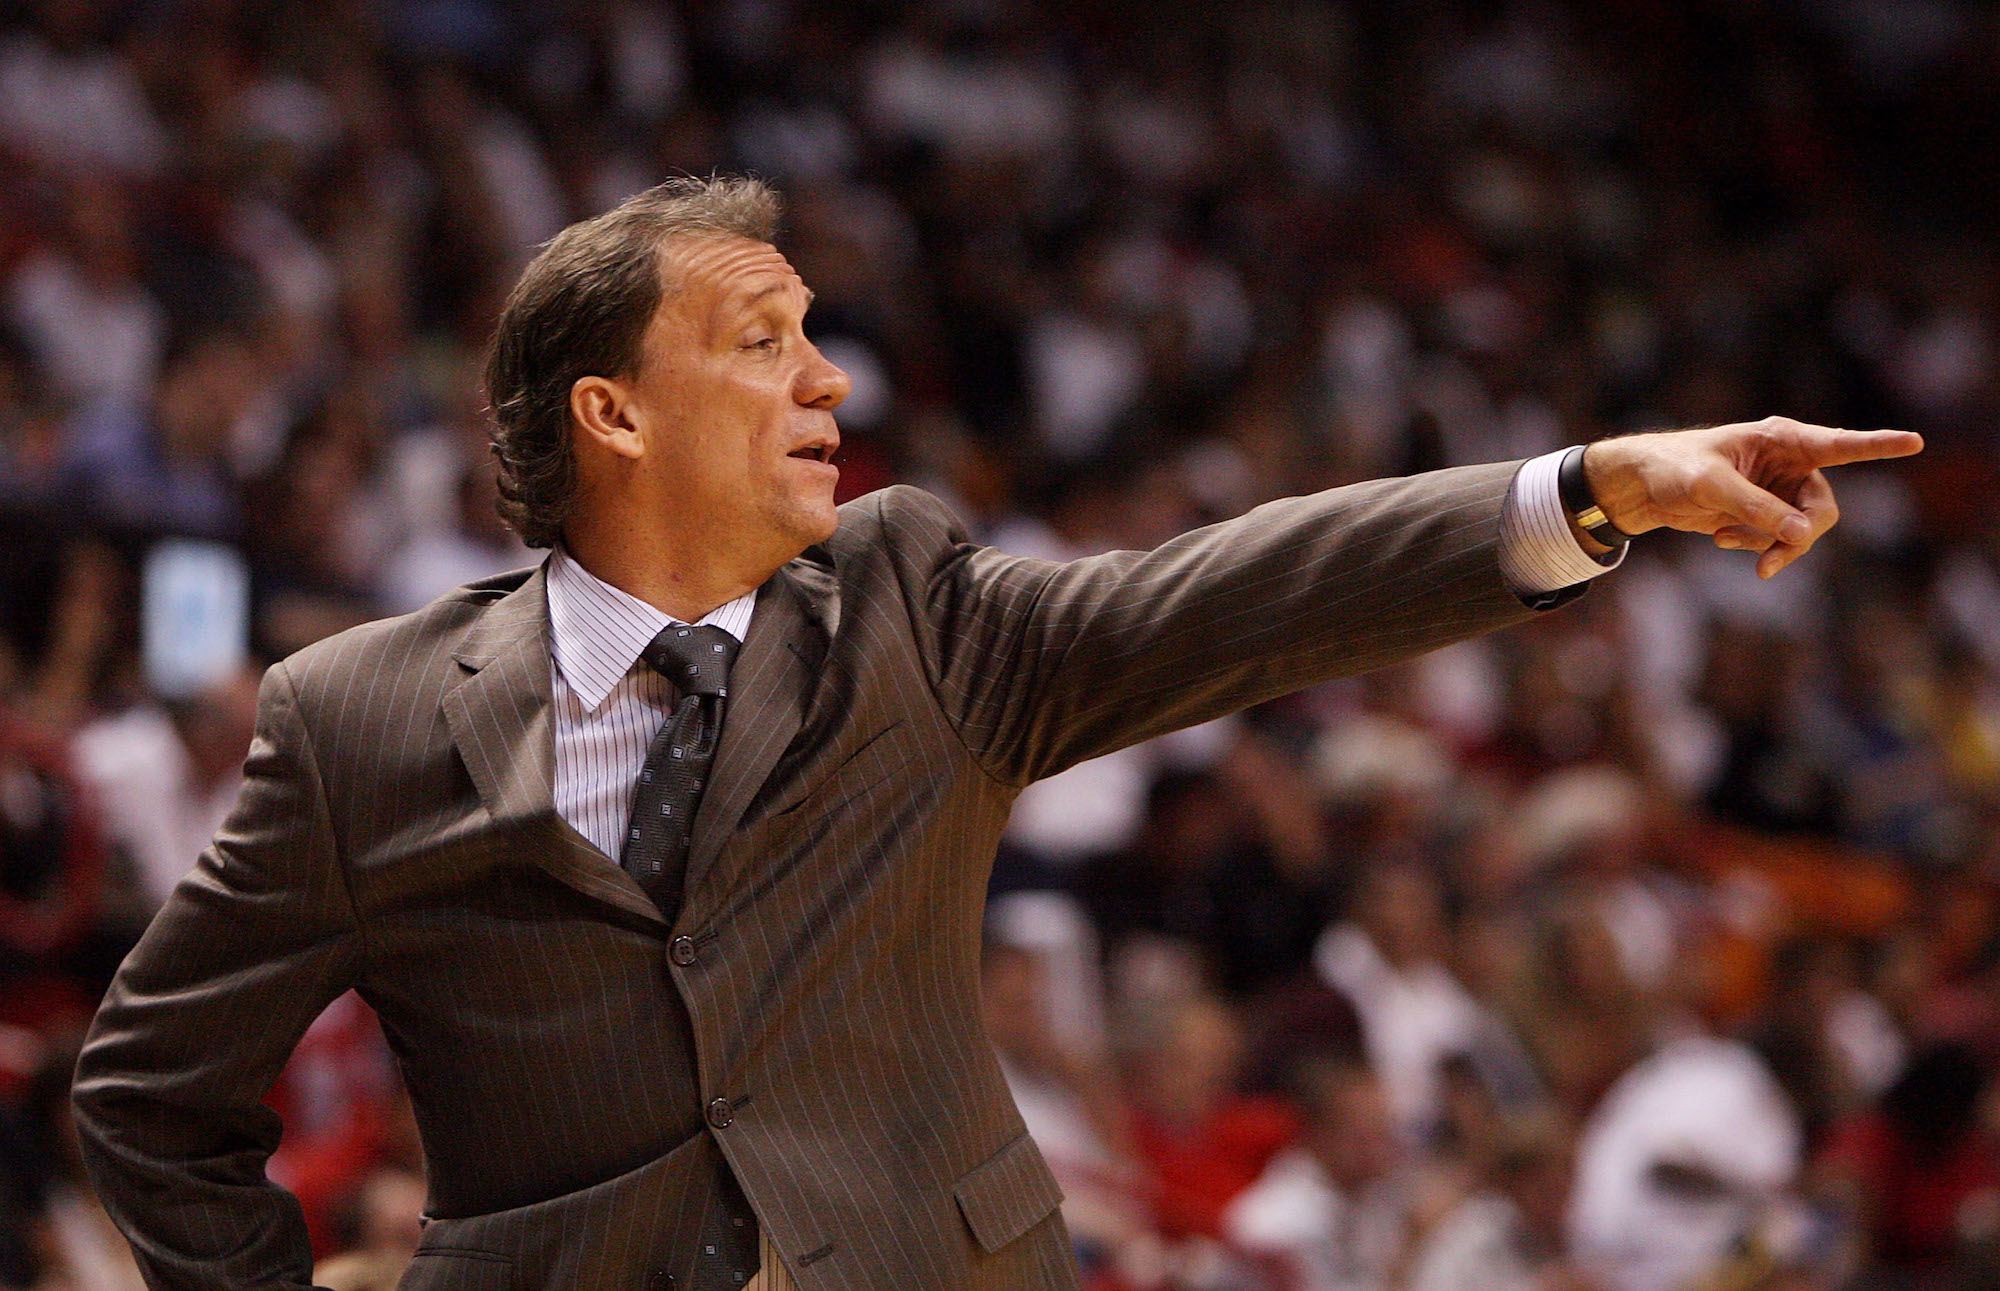 Minnesota Timberwolves coach Flip Saunders tragically died in 2015